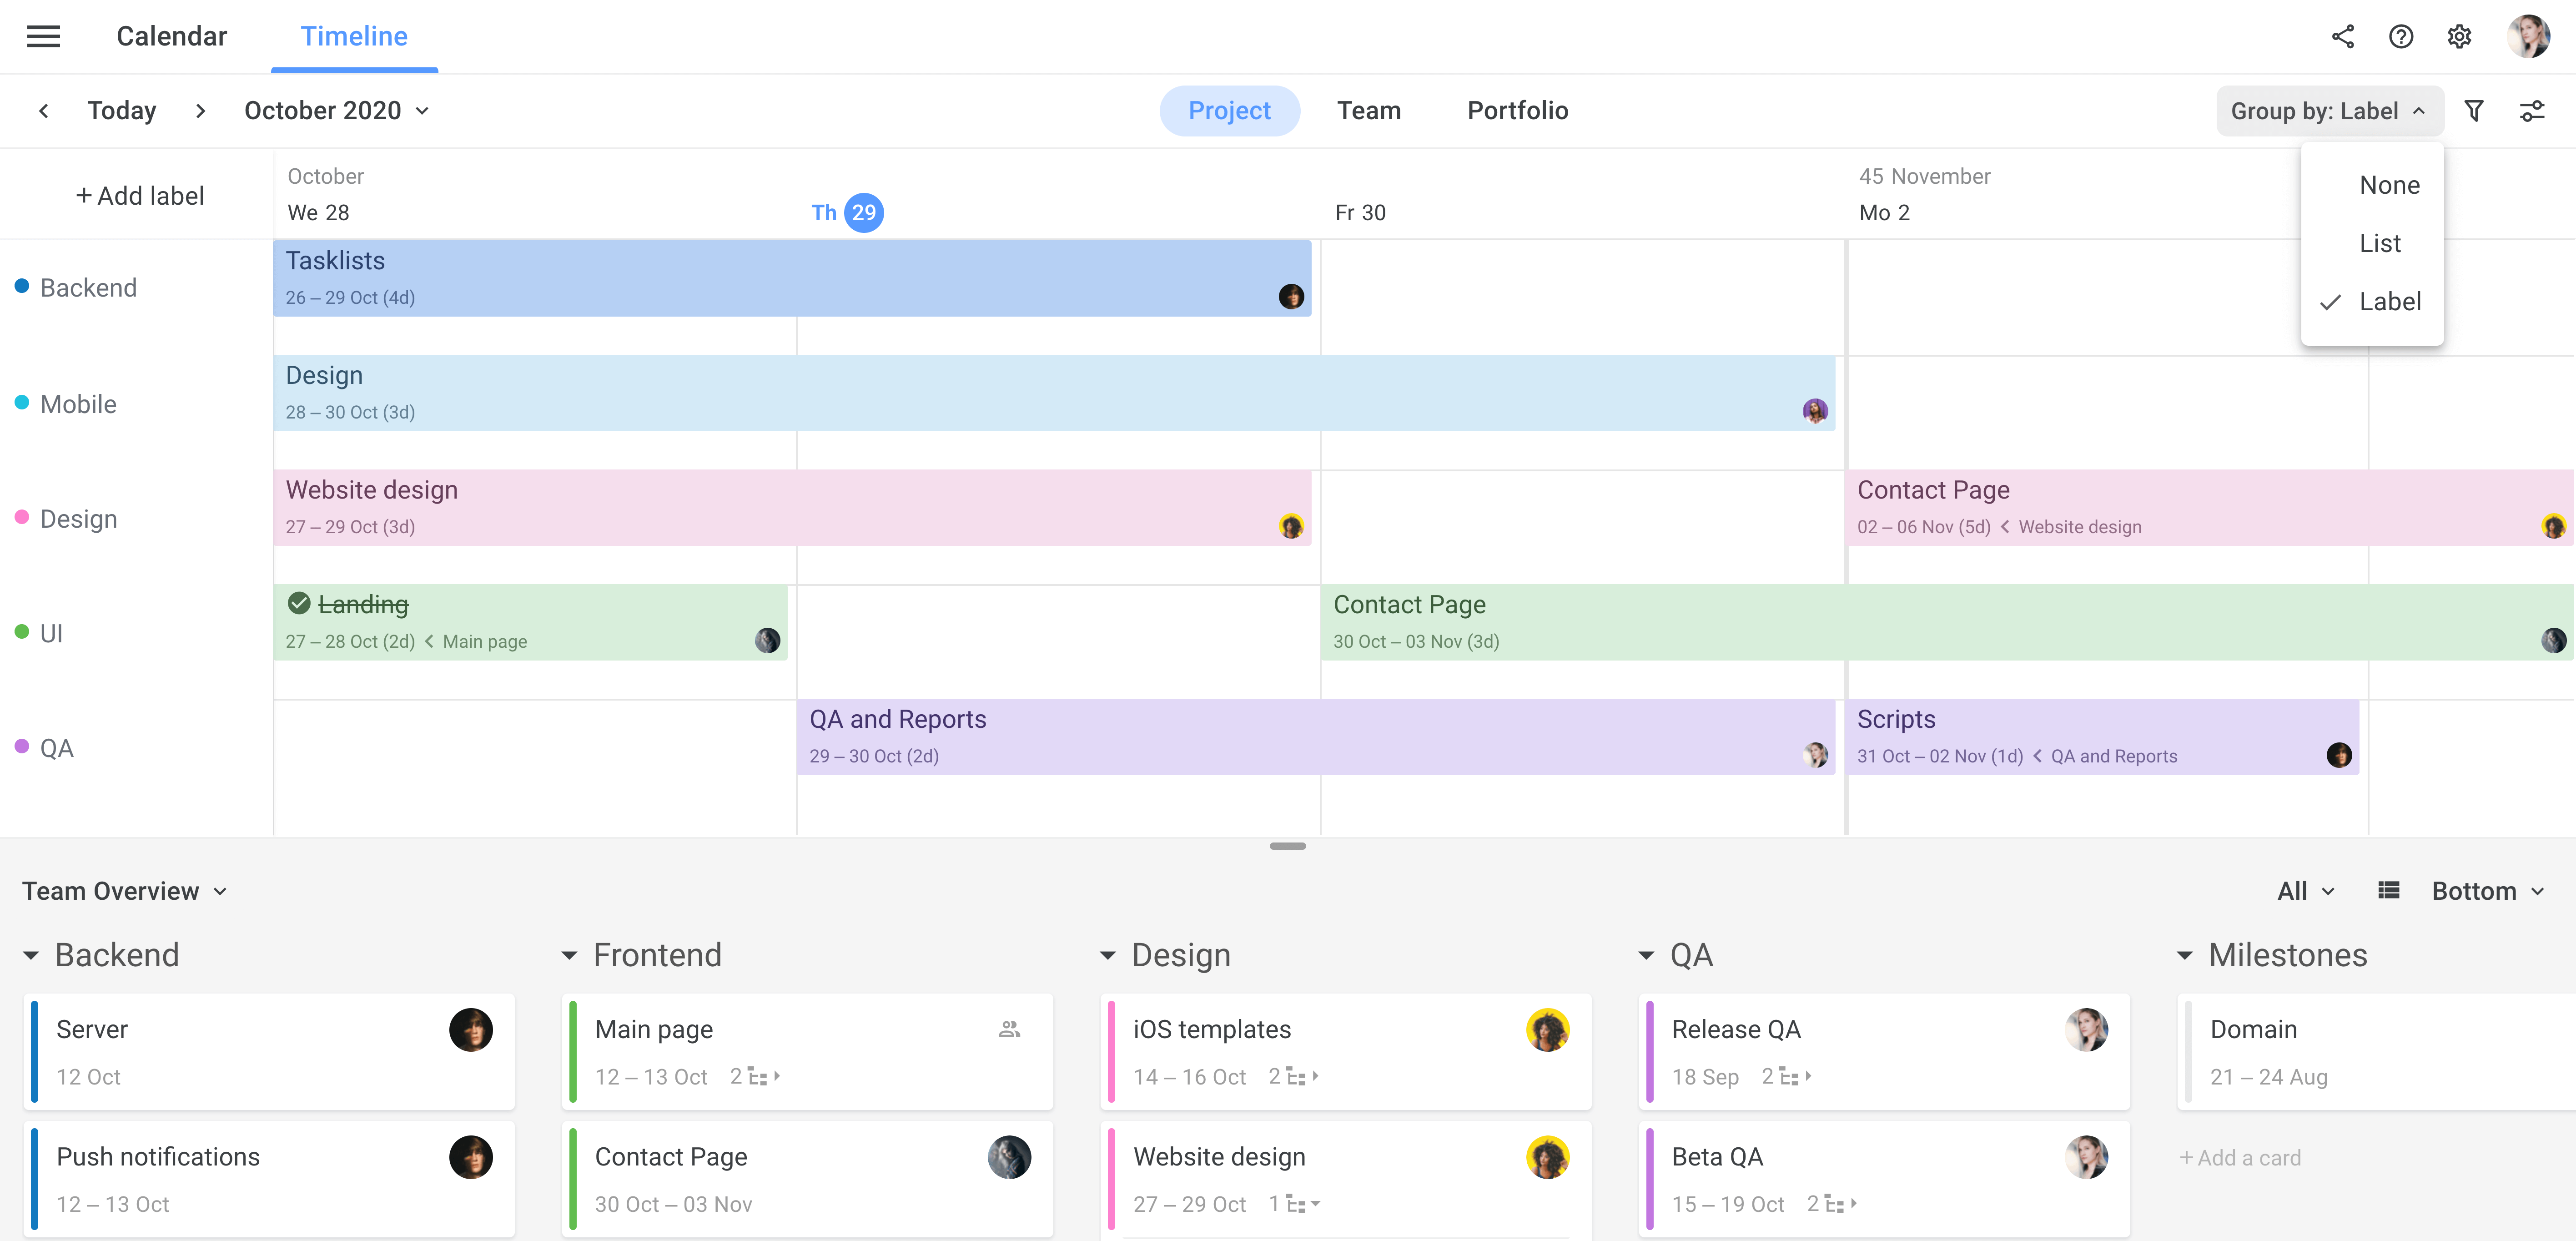 Planyway Team timeline group by label